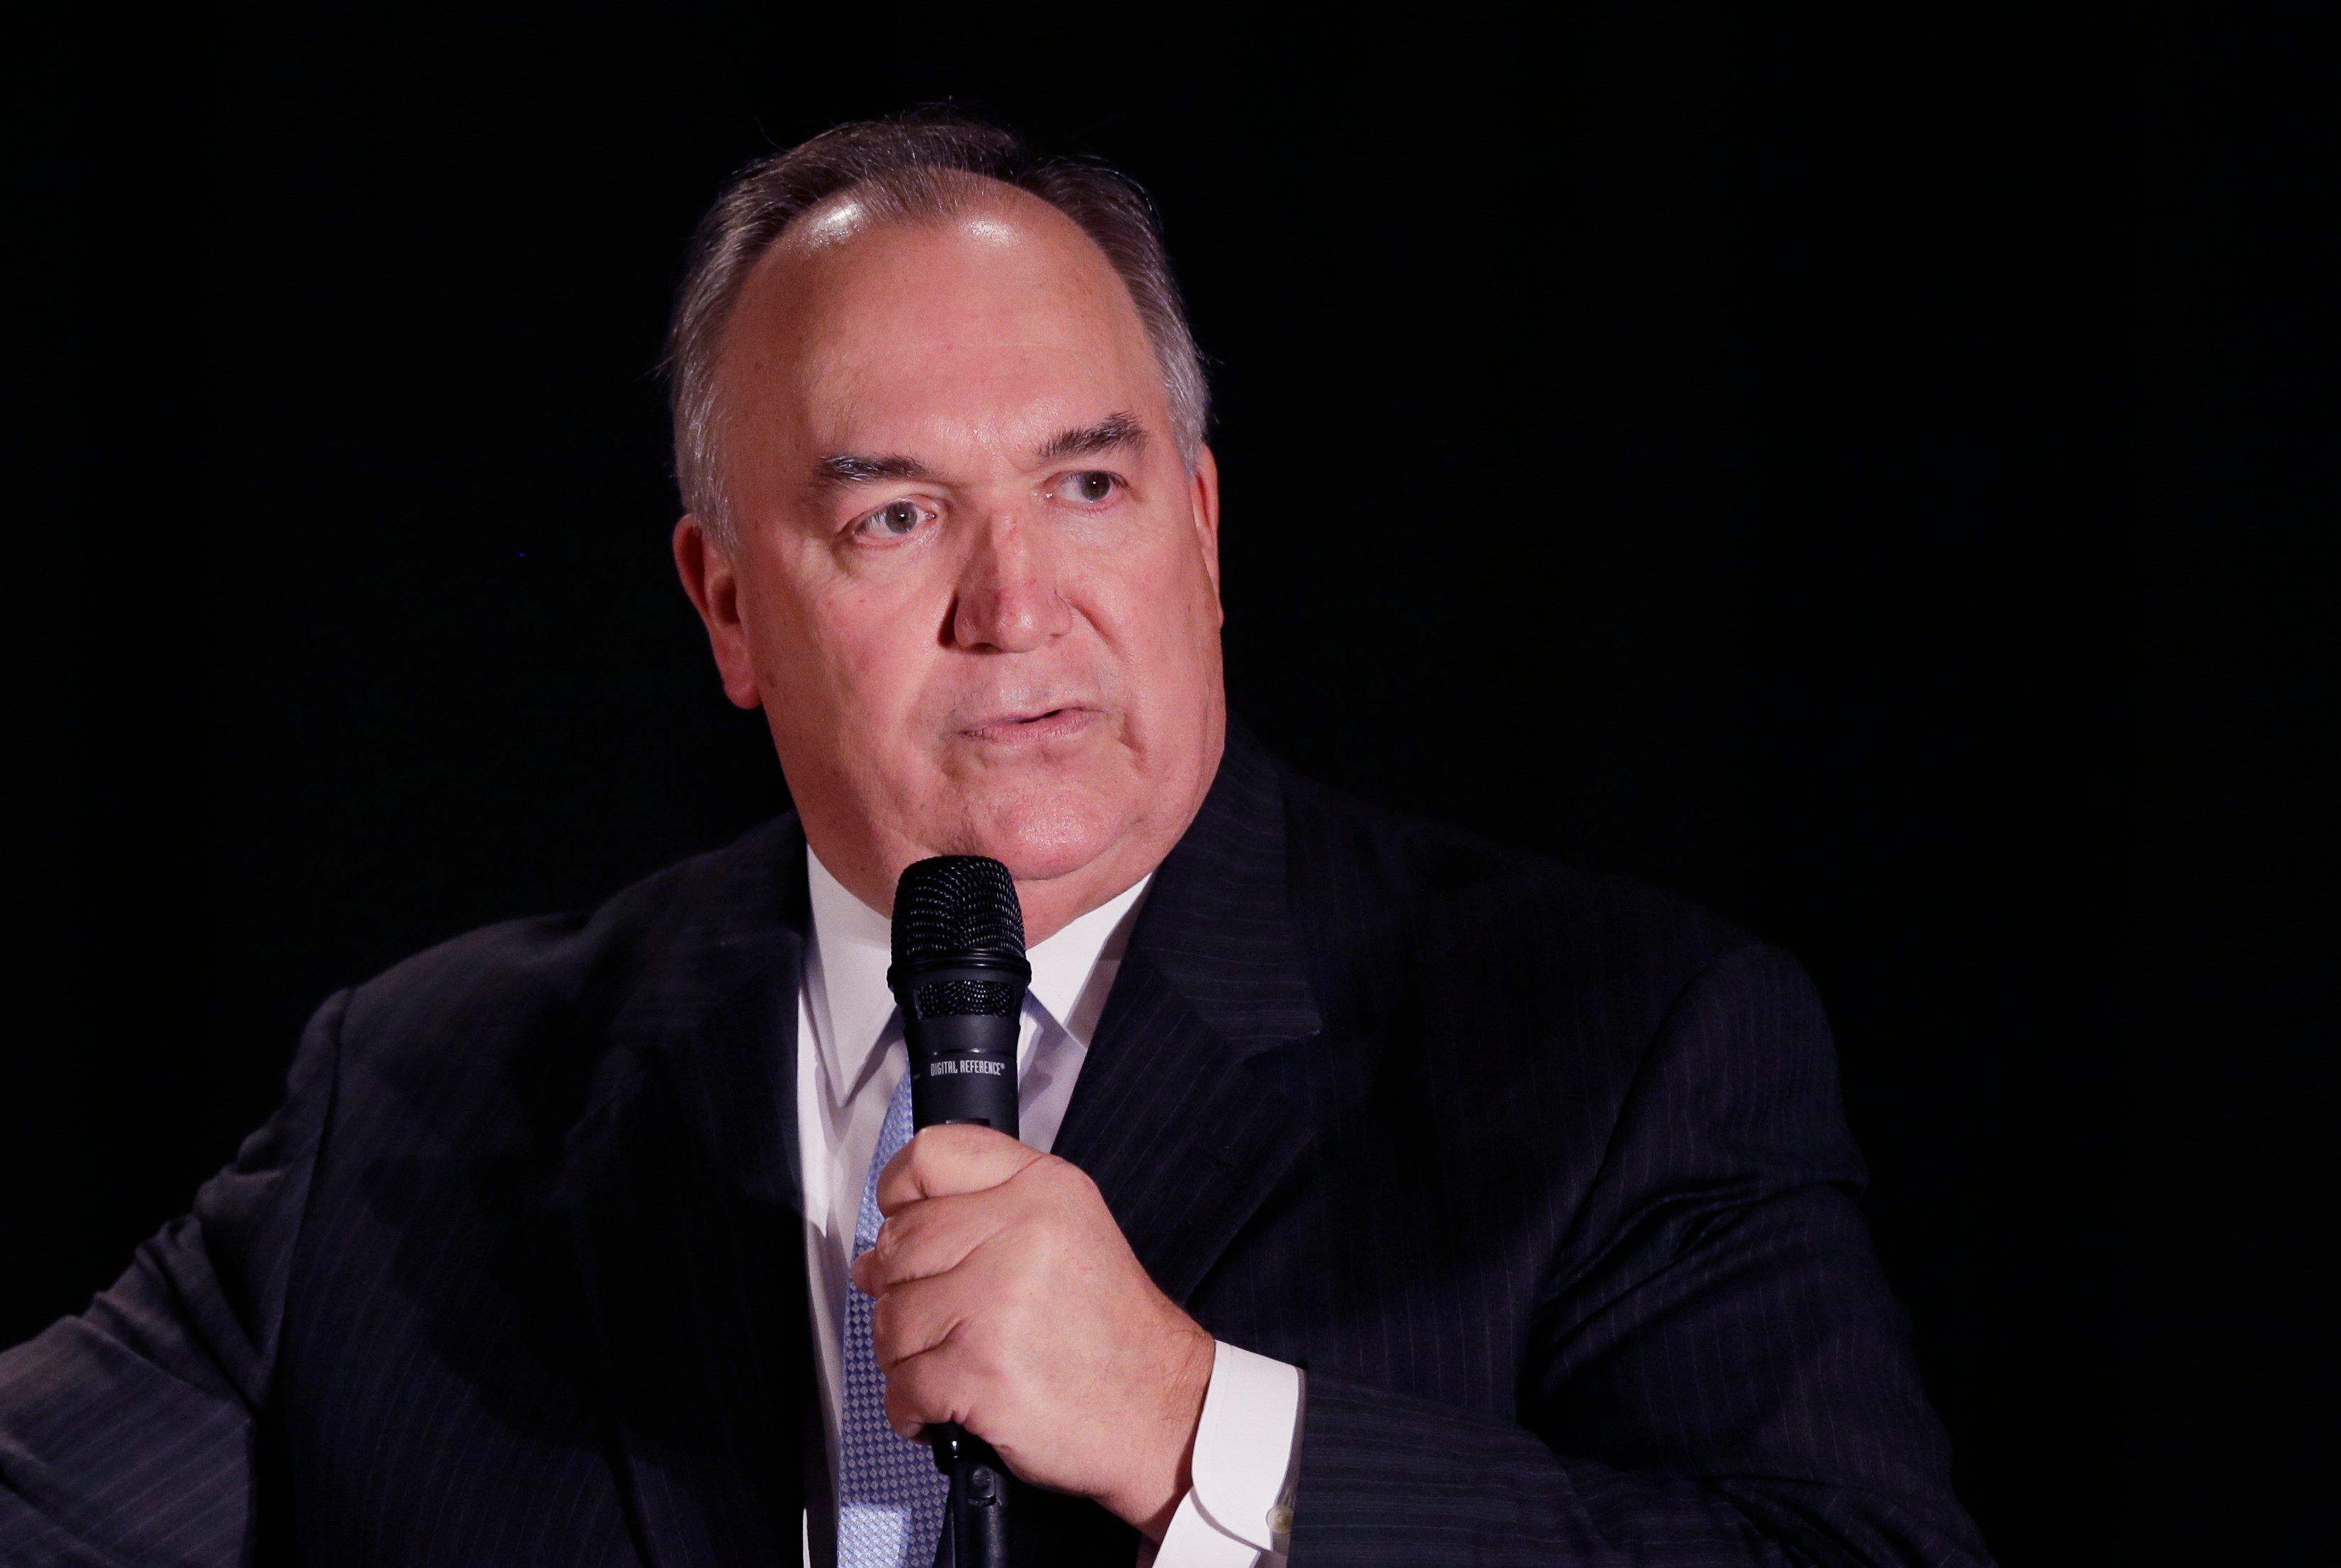 John Engler (In a photo from Oct. 13, 2014, former Michigan Gov. John Engler is seen during a Republican rally in Troy, Mich. (AP Photo/Carlos Osorio))